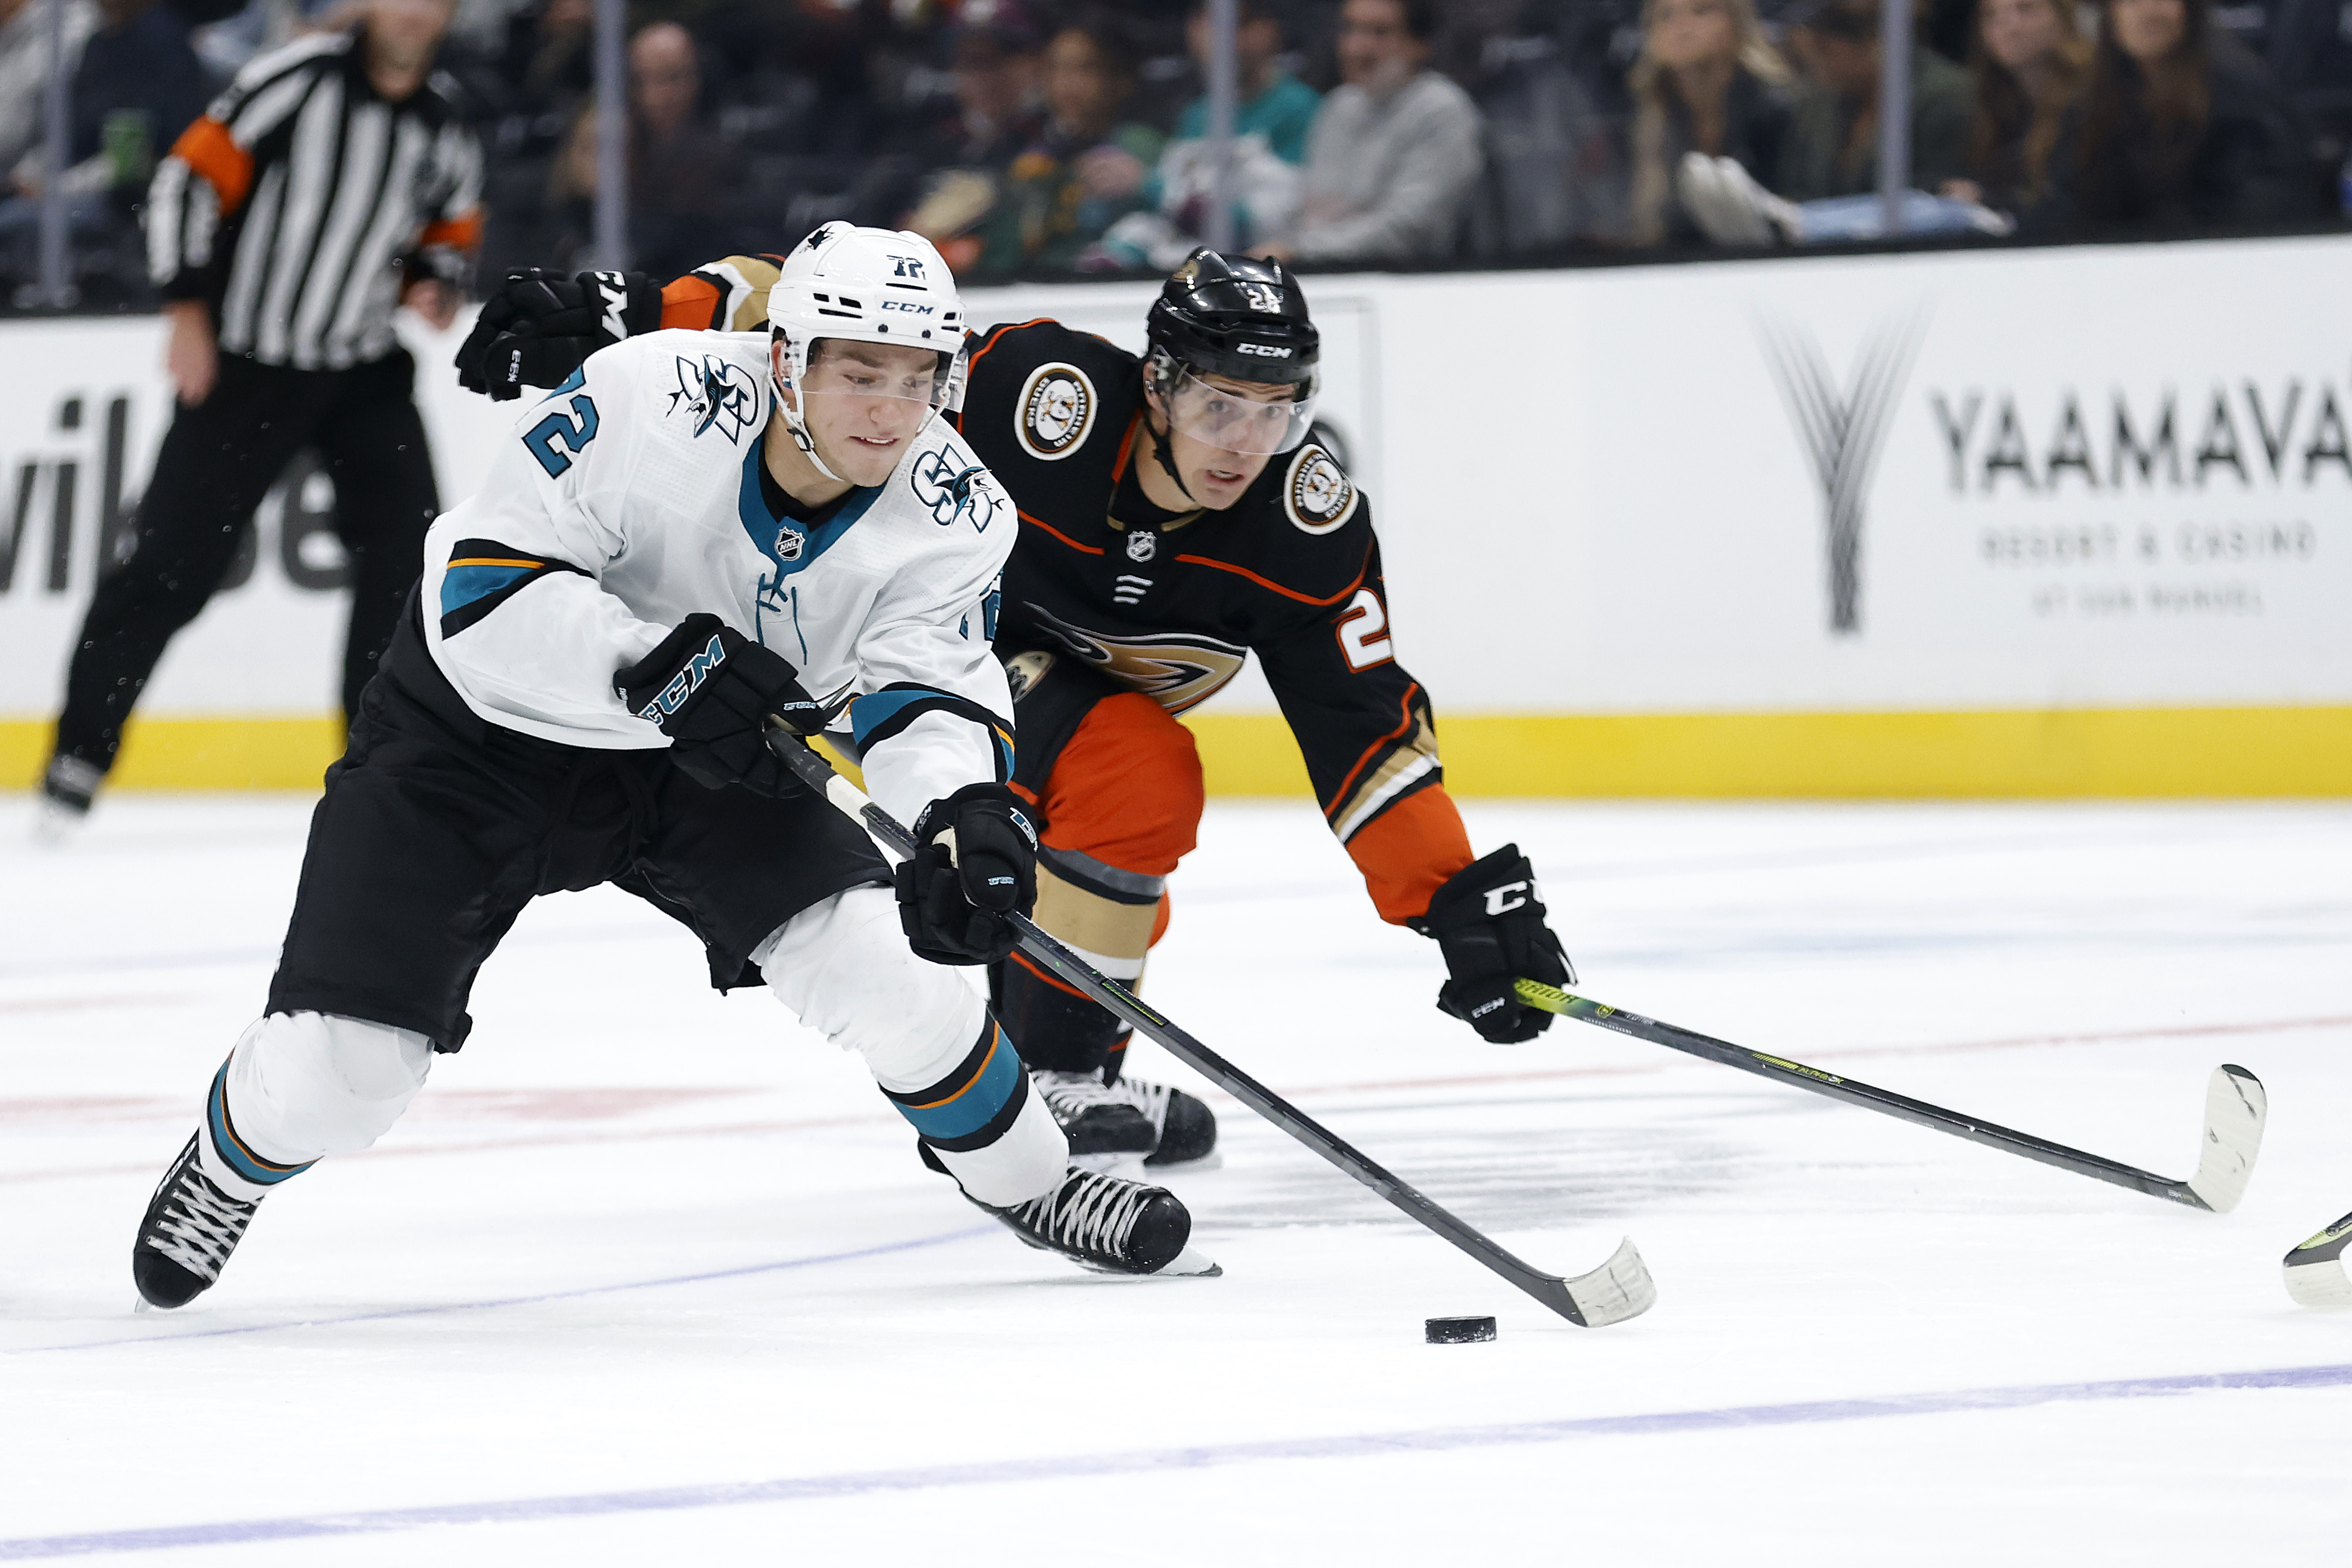 William Eklund #72 of the San Jose Sharks skates past Vinni Lettieri #28 of the Anaheim Ducks during the third period of a game at Honda Center on September 30, 2021 in Anaheim, California.